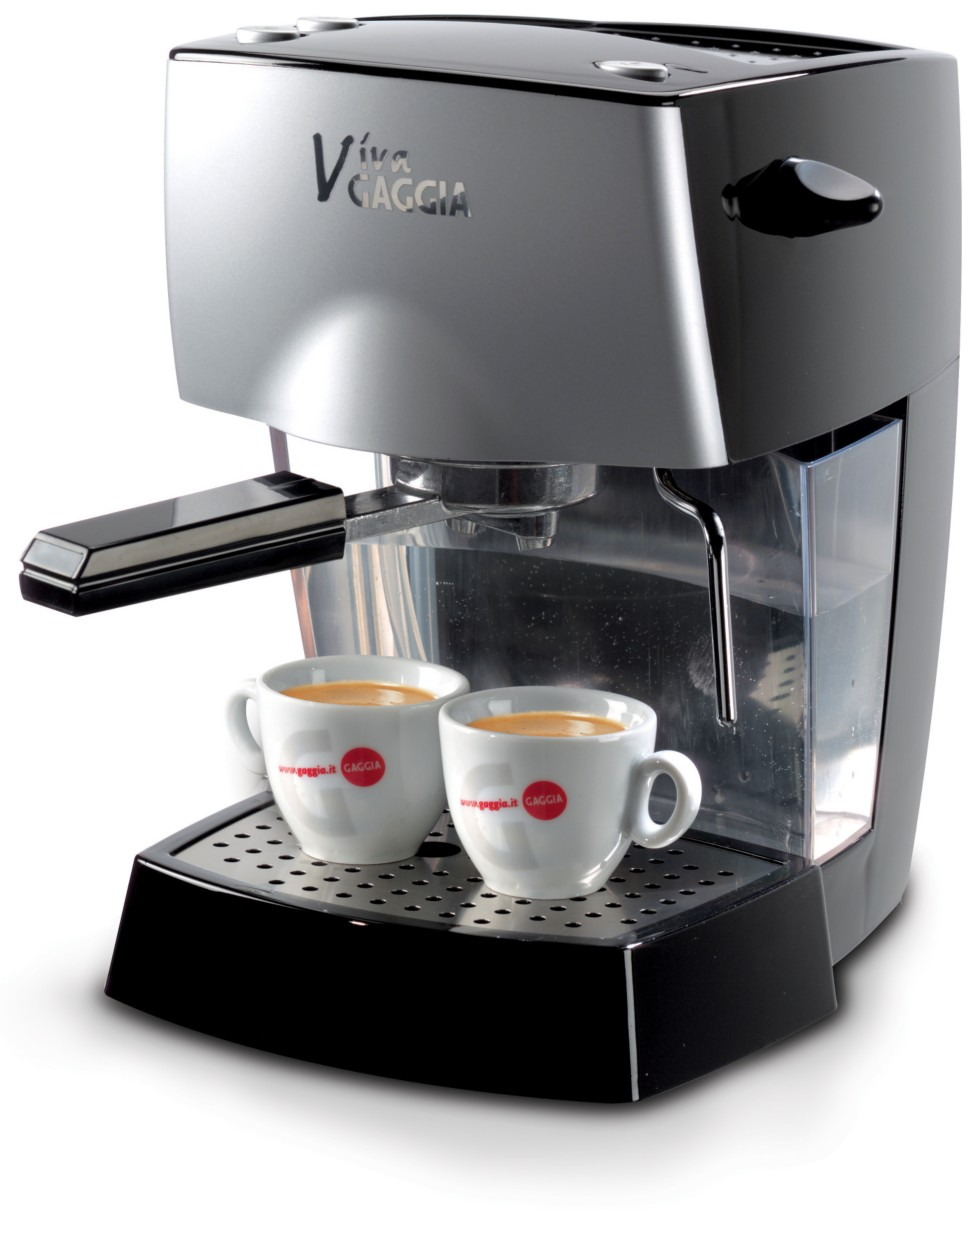 gaggia viva espresso coffee maker review compare prices buy online. Black Bedroom Furniture Sets. Home Design Ideas